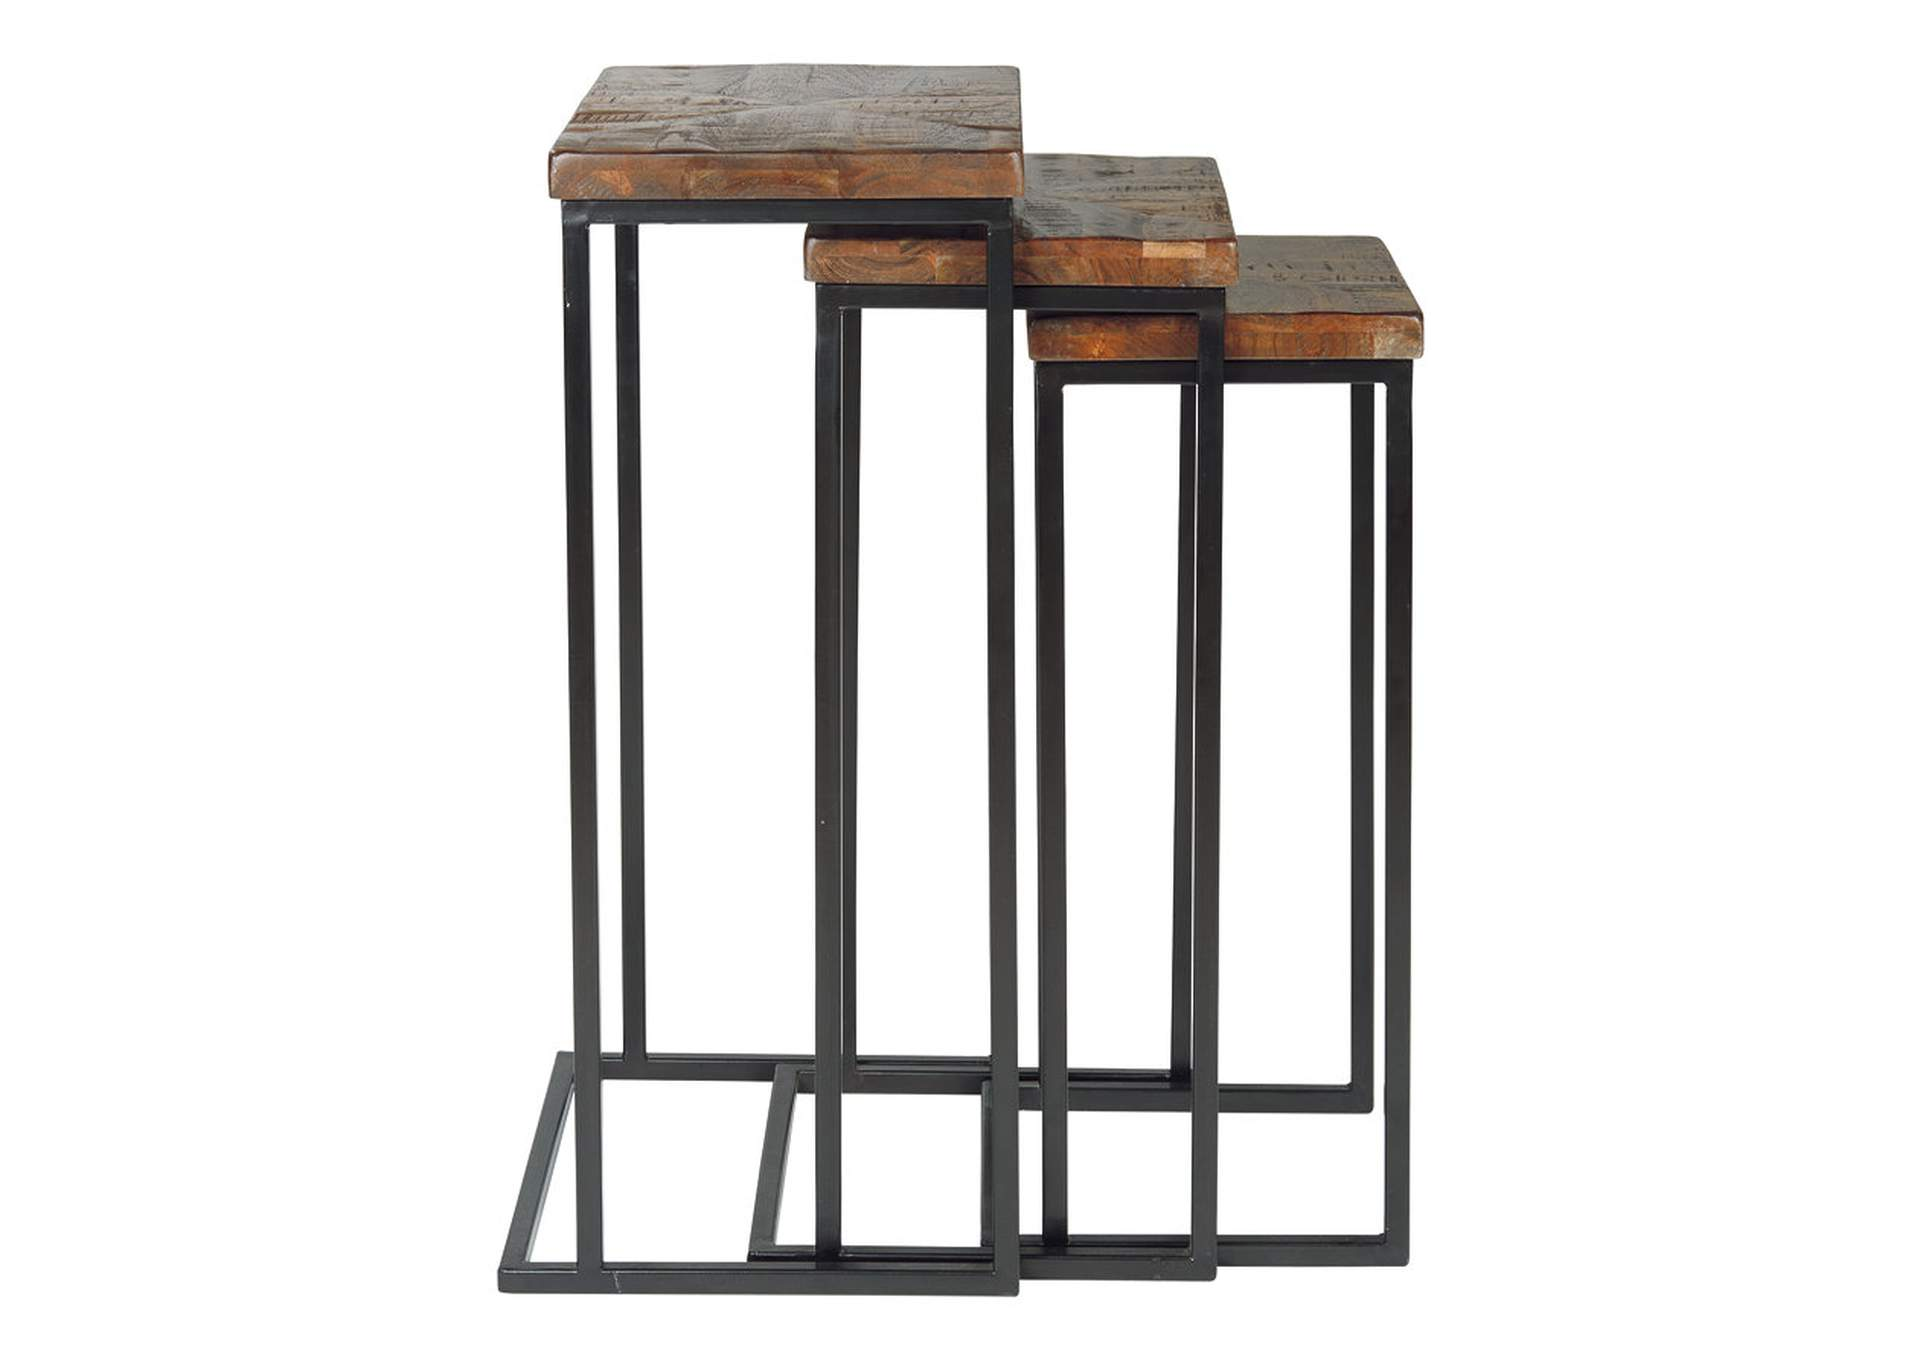 Cainthorne Brown/Black Accent Table (Set of 3),Signature Design By Ashley